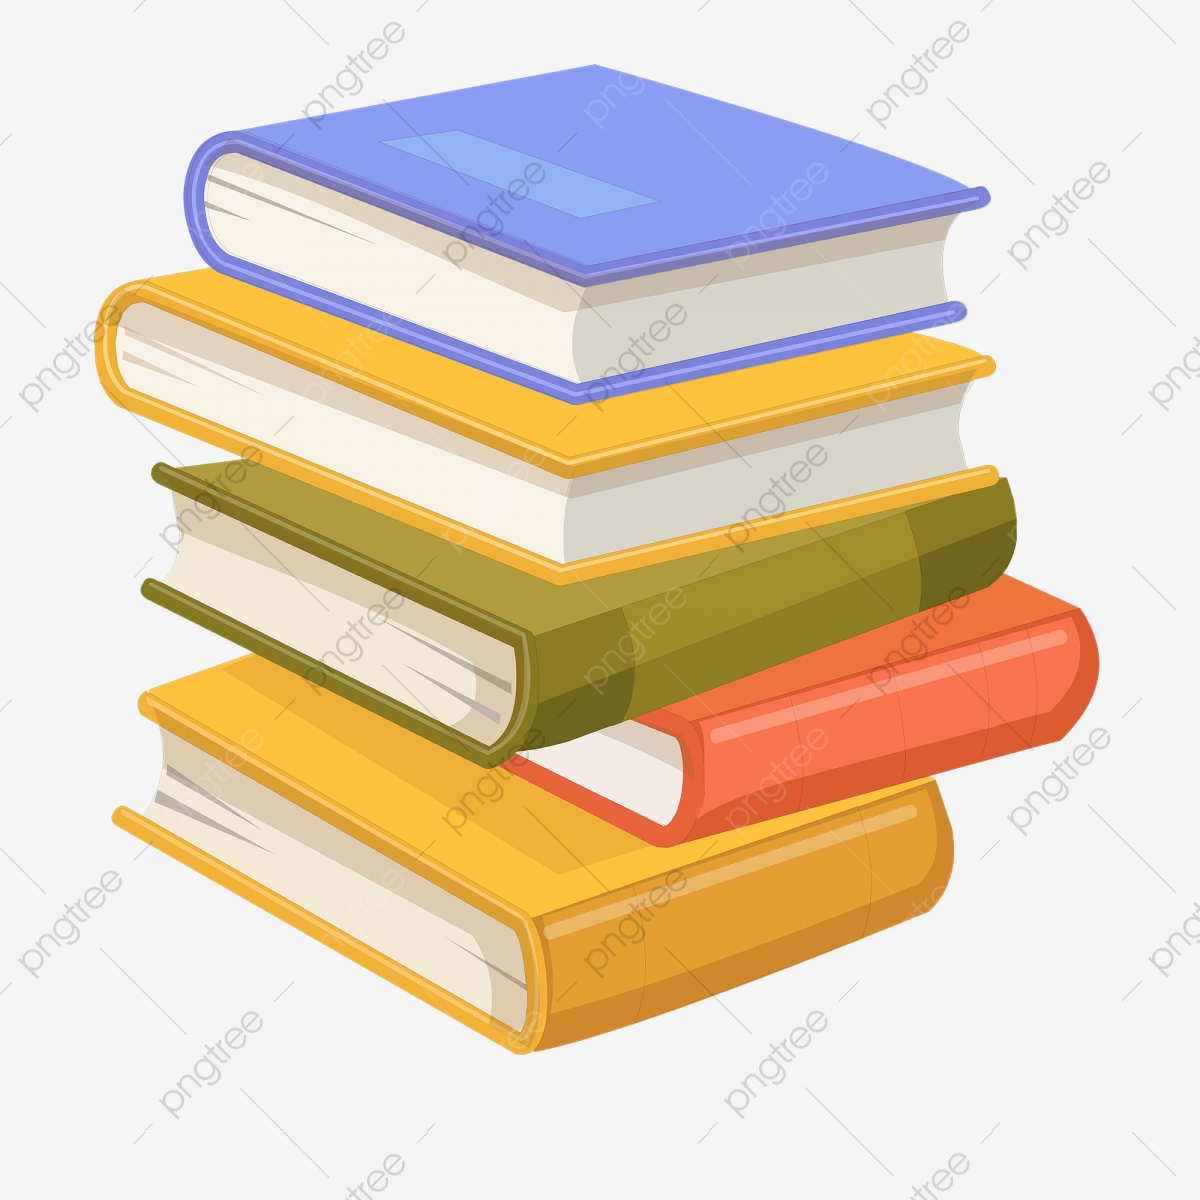 Book Png Images Vector And Psd Files Free Download On Pngtree